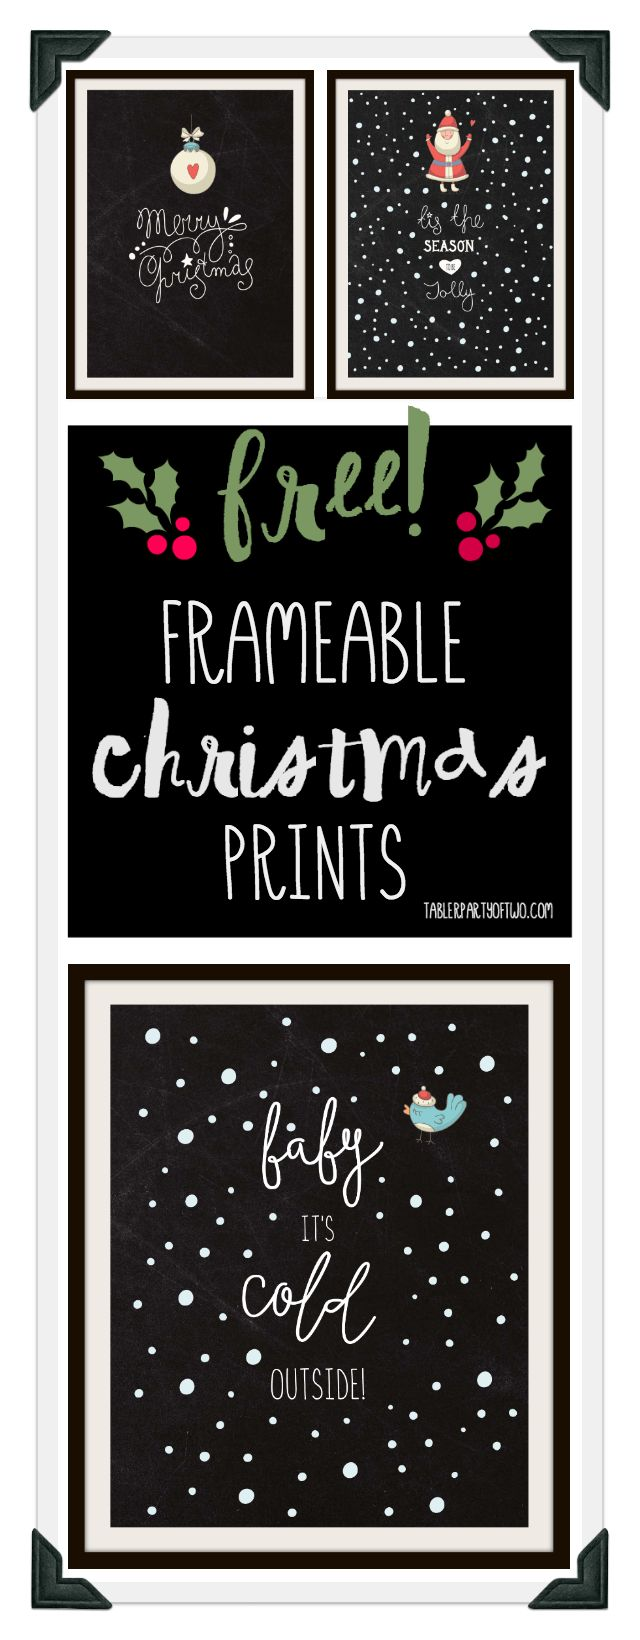 Super cute, fun and FREE Christmas frameable artwork! Three frameable prints, perfect for the holidays. Plus, you can use them as your phone wallpaper!